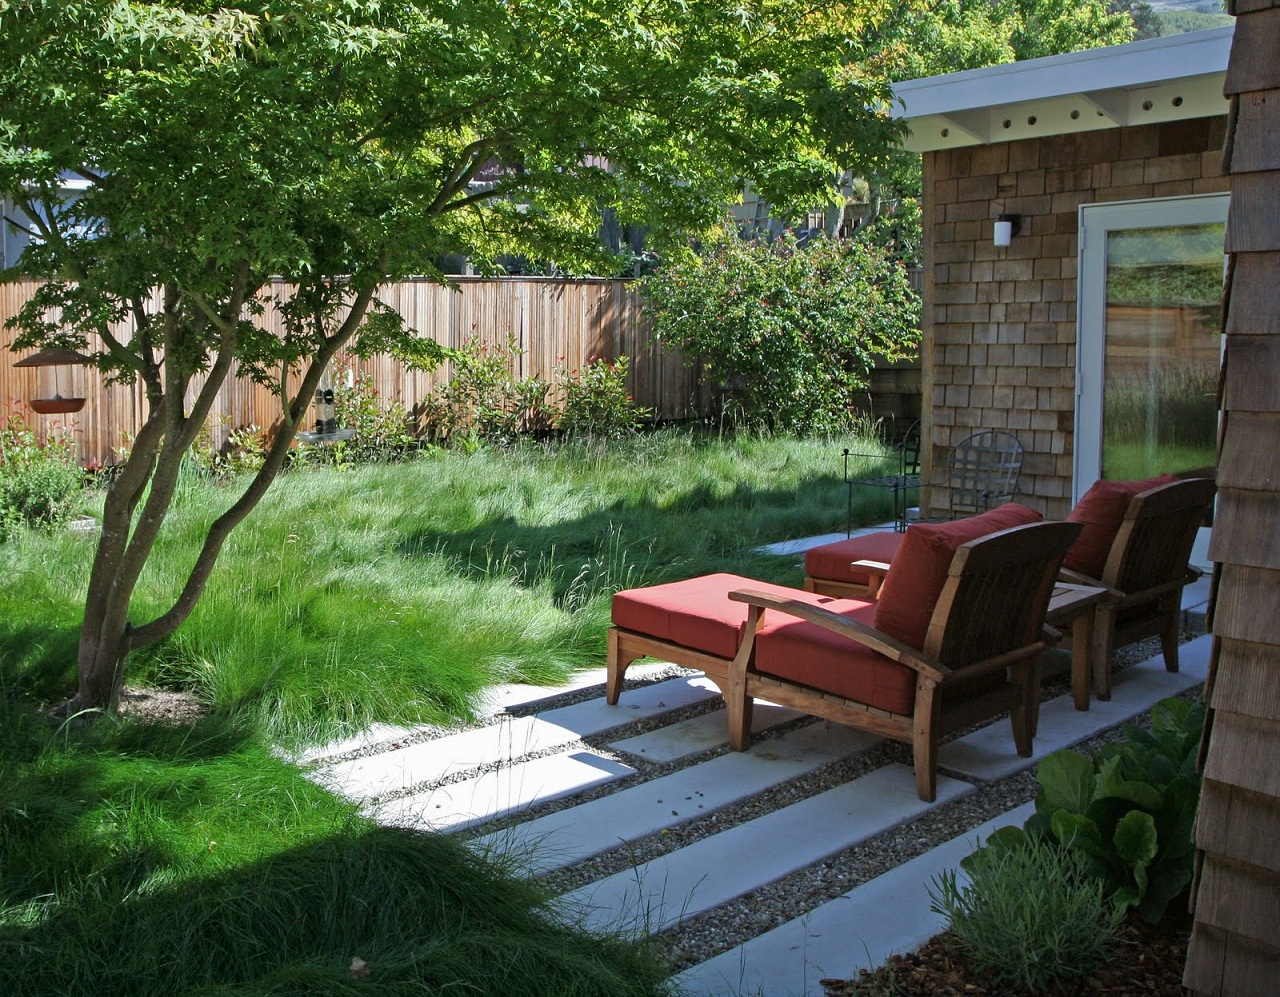 Backyard Landscape Ideas With No Grass : No grass front yard landscape ideas memes